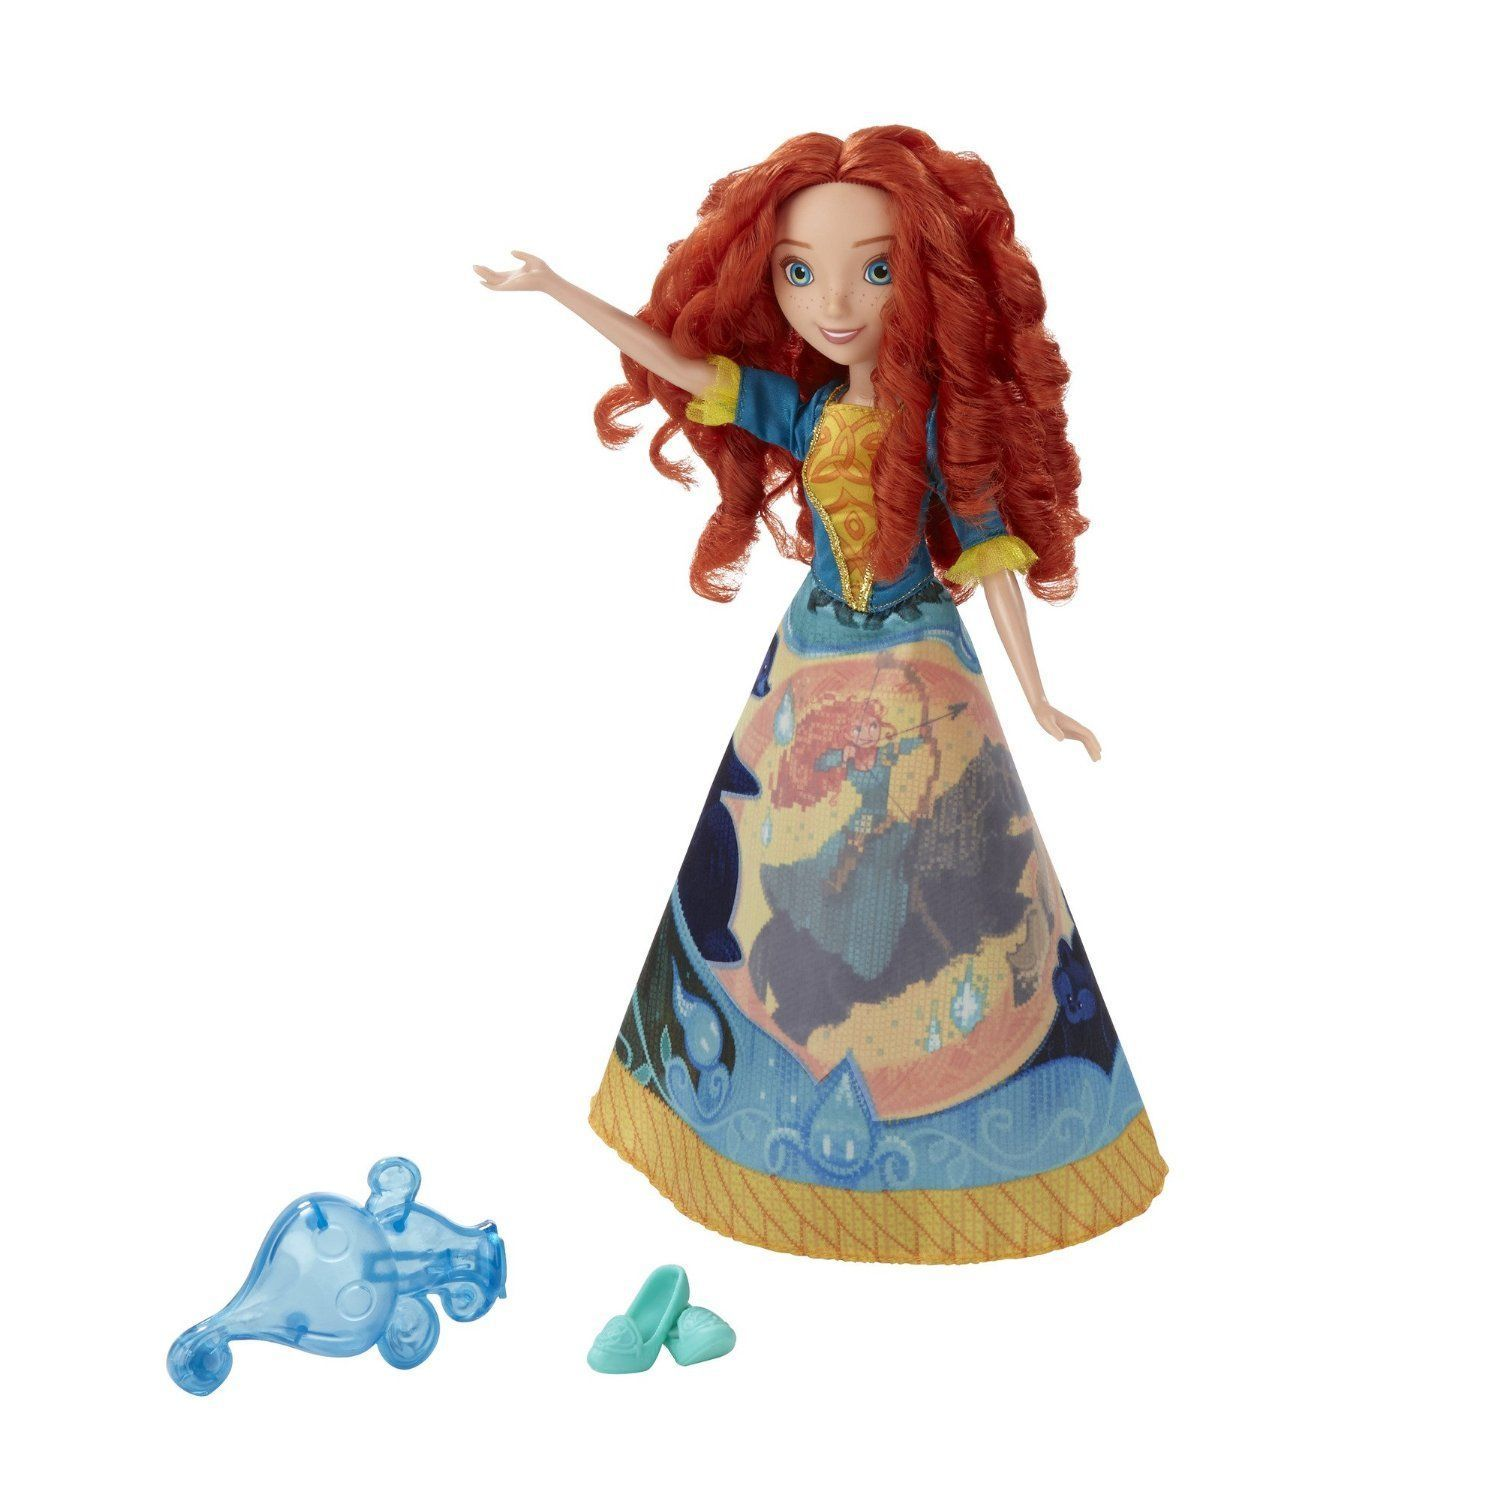 Disney Princess Merida Story Skirt Doll in Turquoise Blue by Hasbro